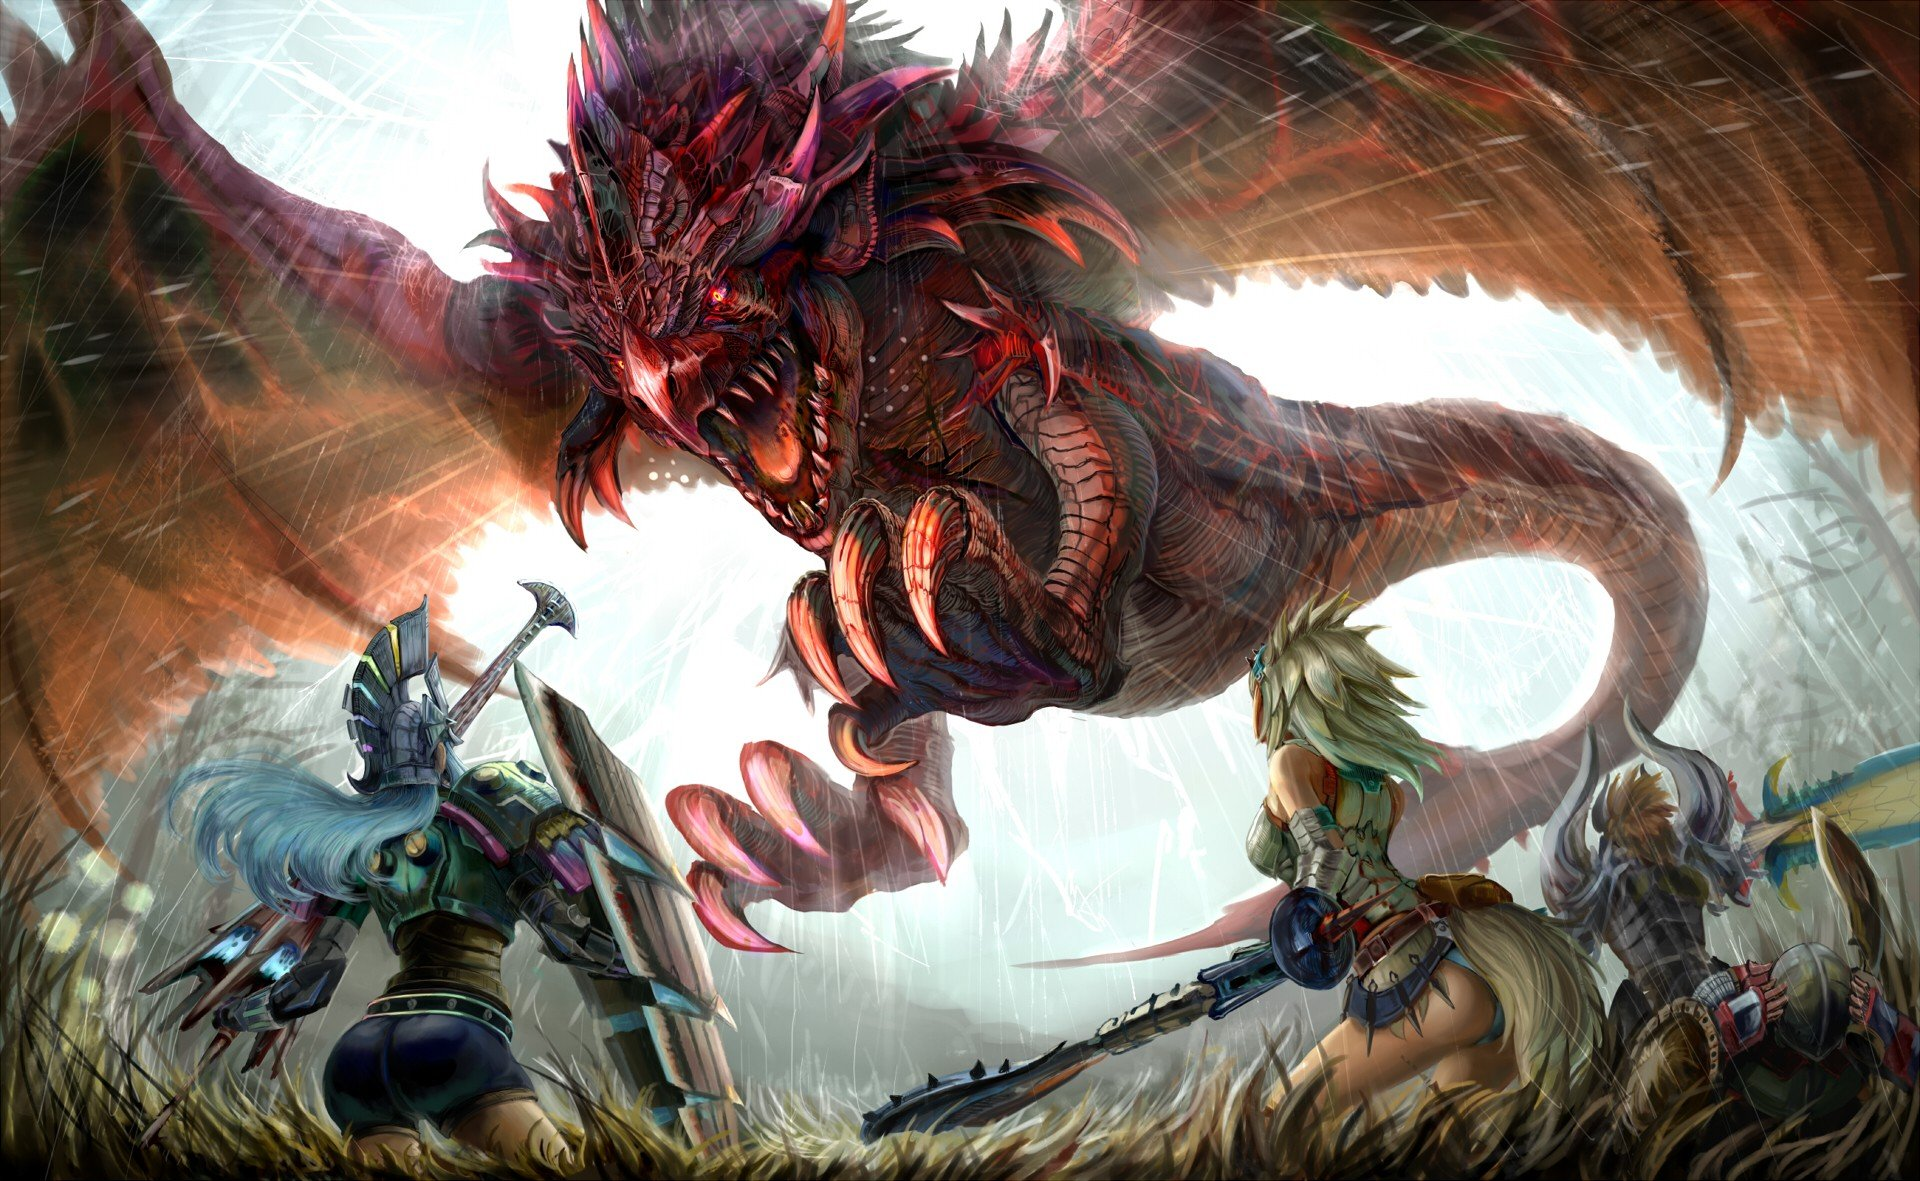 Rathalos Monster Hunter Wyvern Hd Wallpapers Desktop And